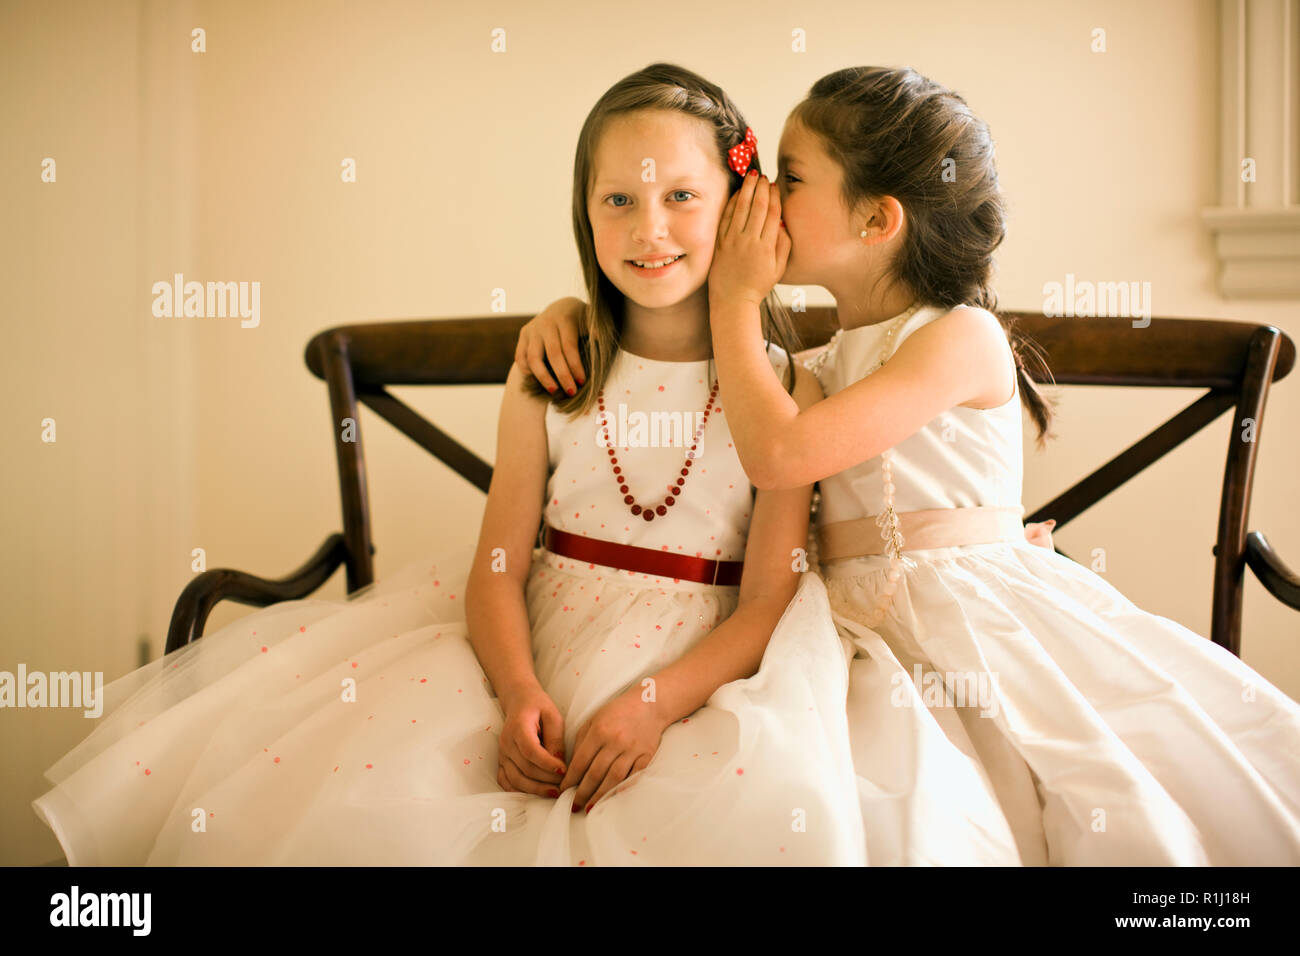 Young girls in white party dresses sit on wooden bench and whisper secrets as they pose for a portrait. - Stock Image